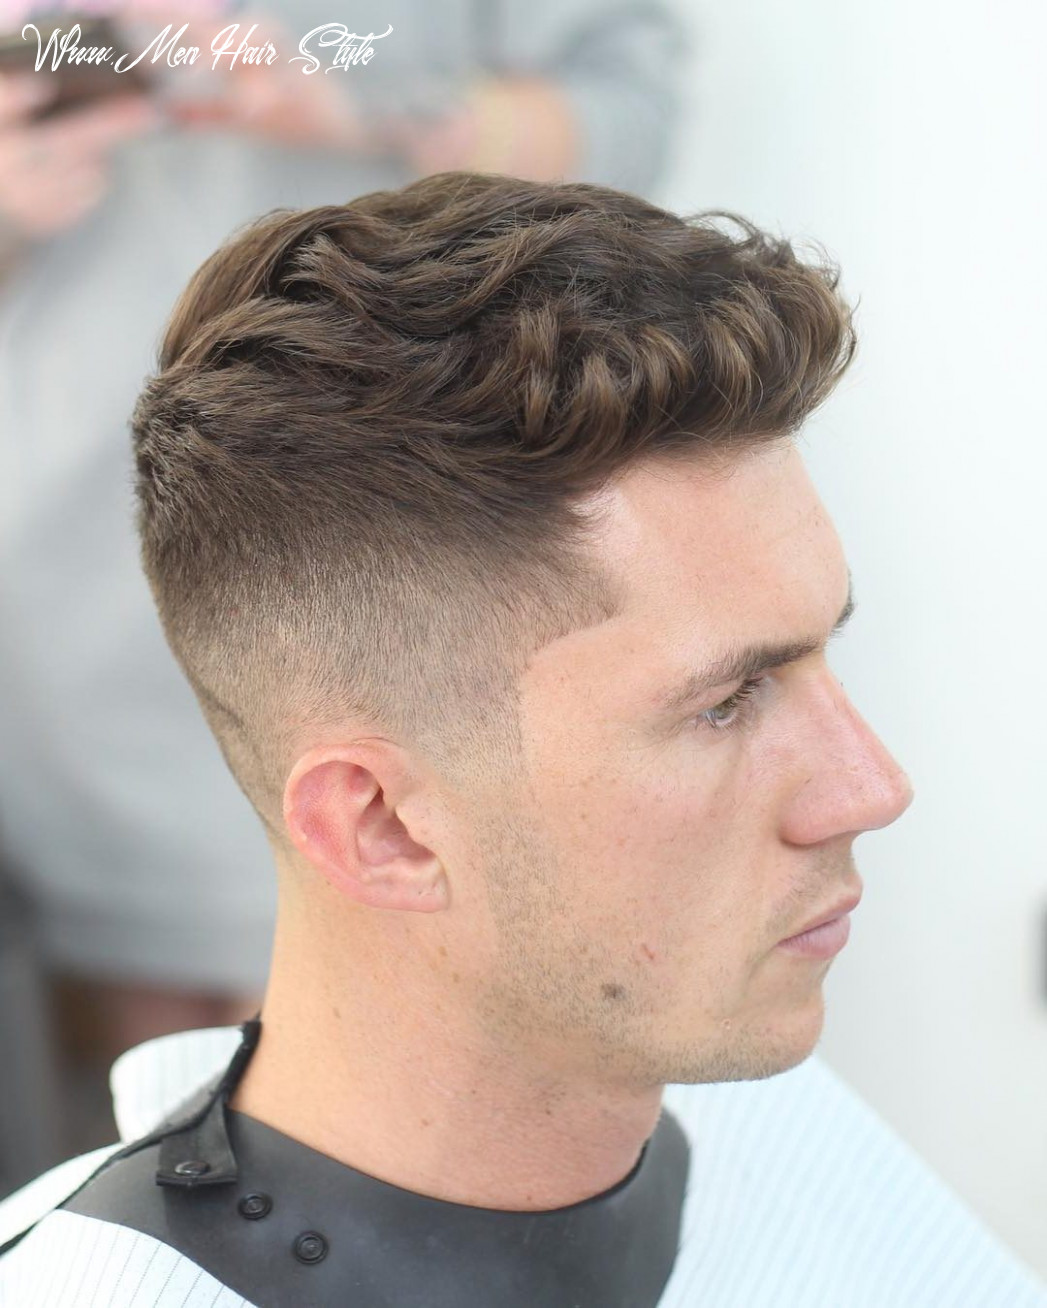 The 12 best short hairstyles for men | improb www